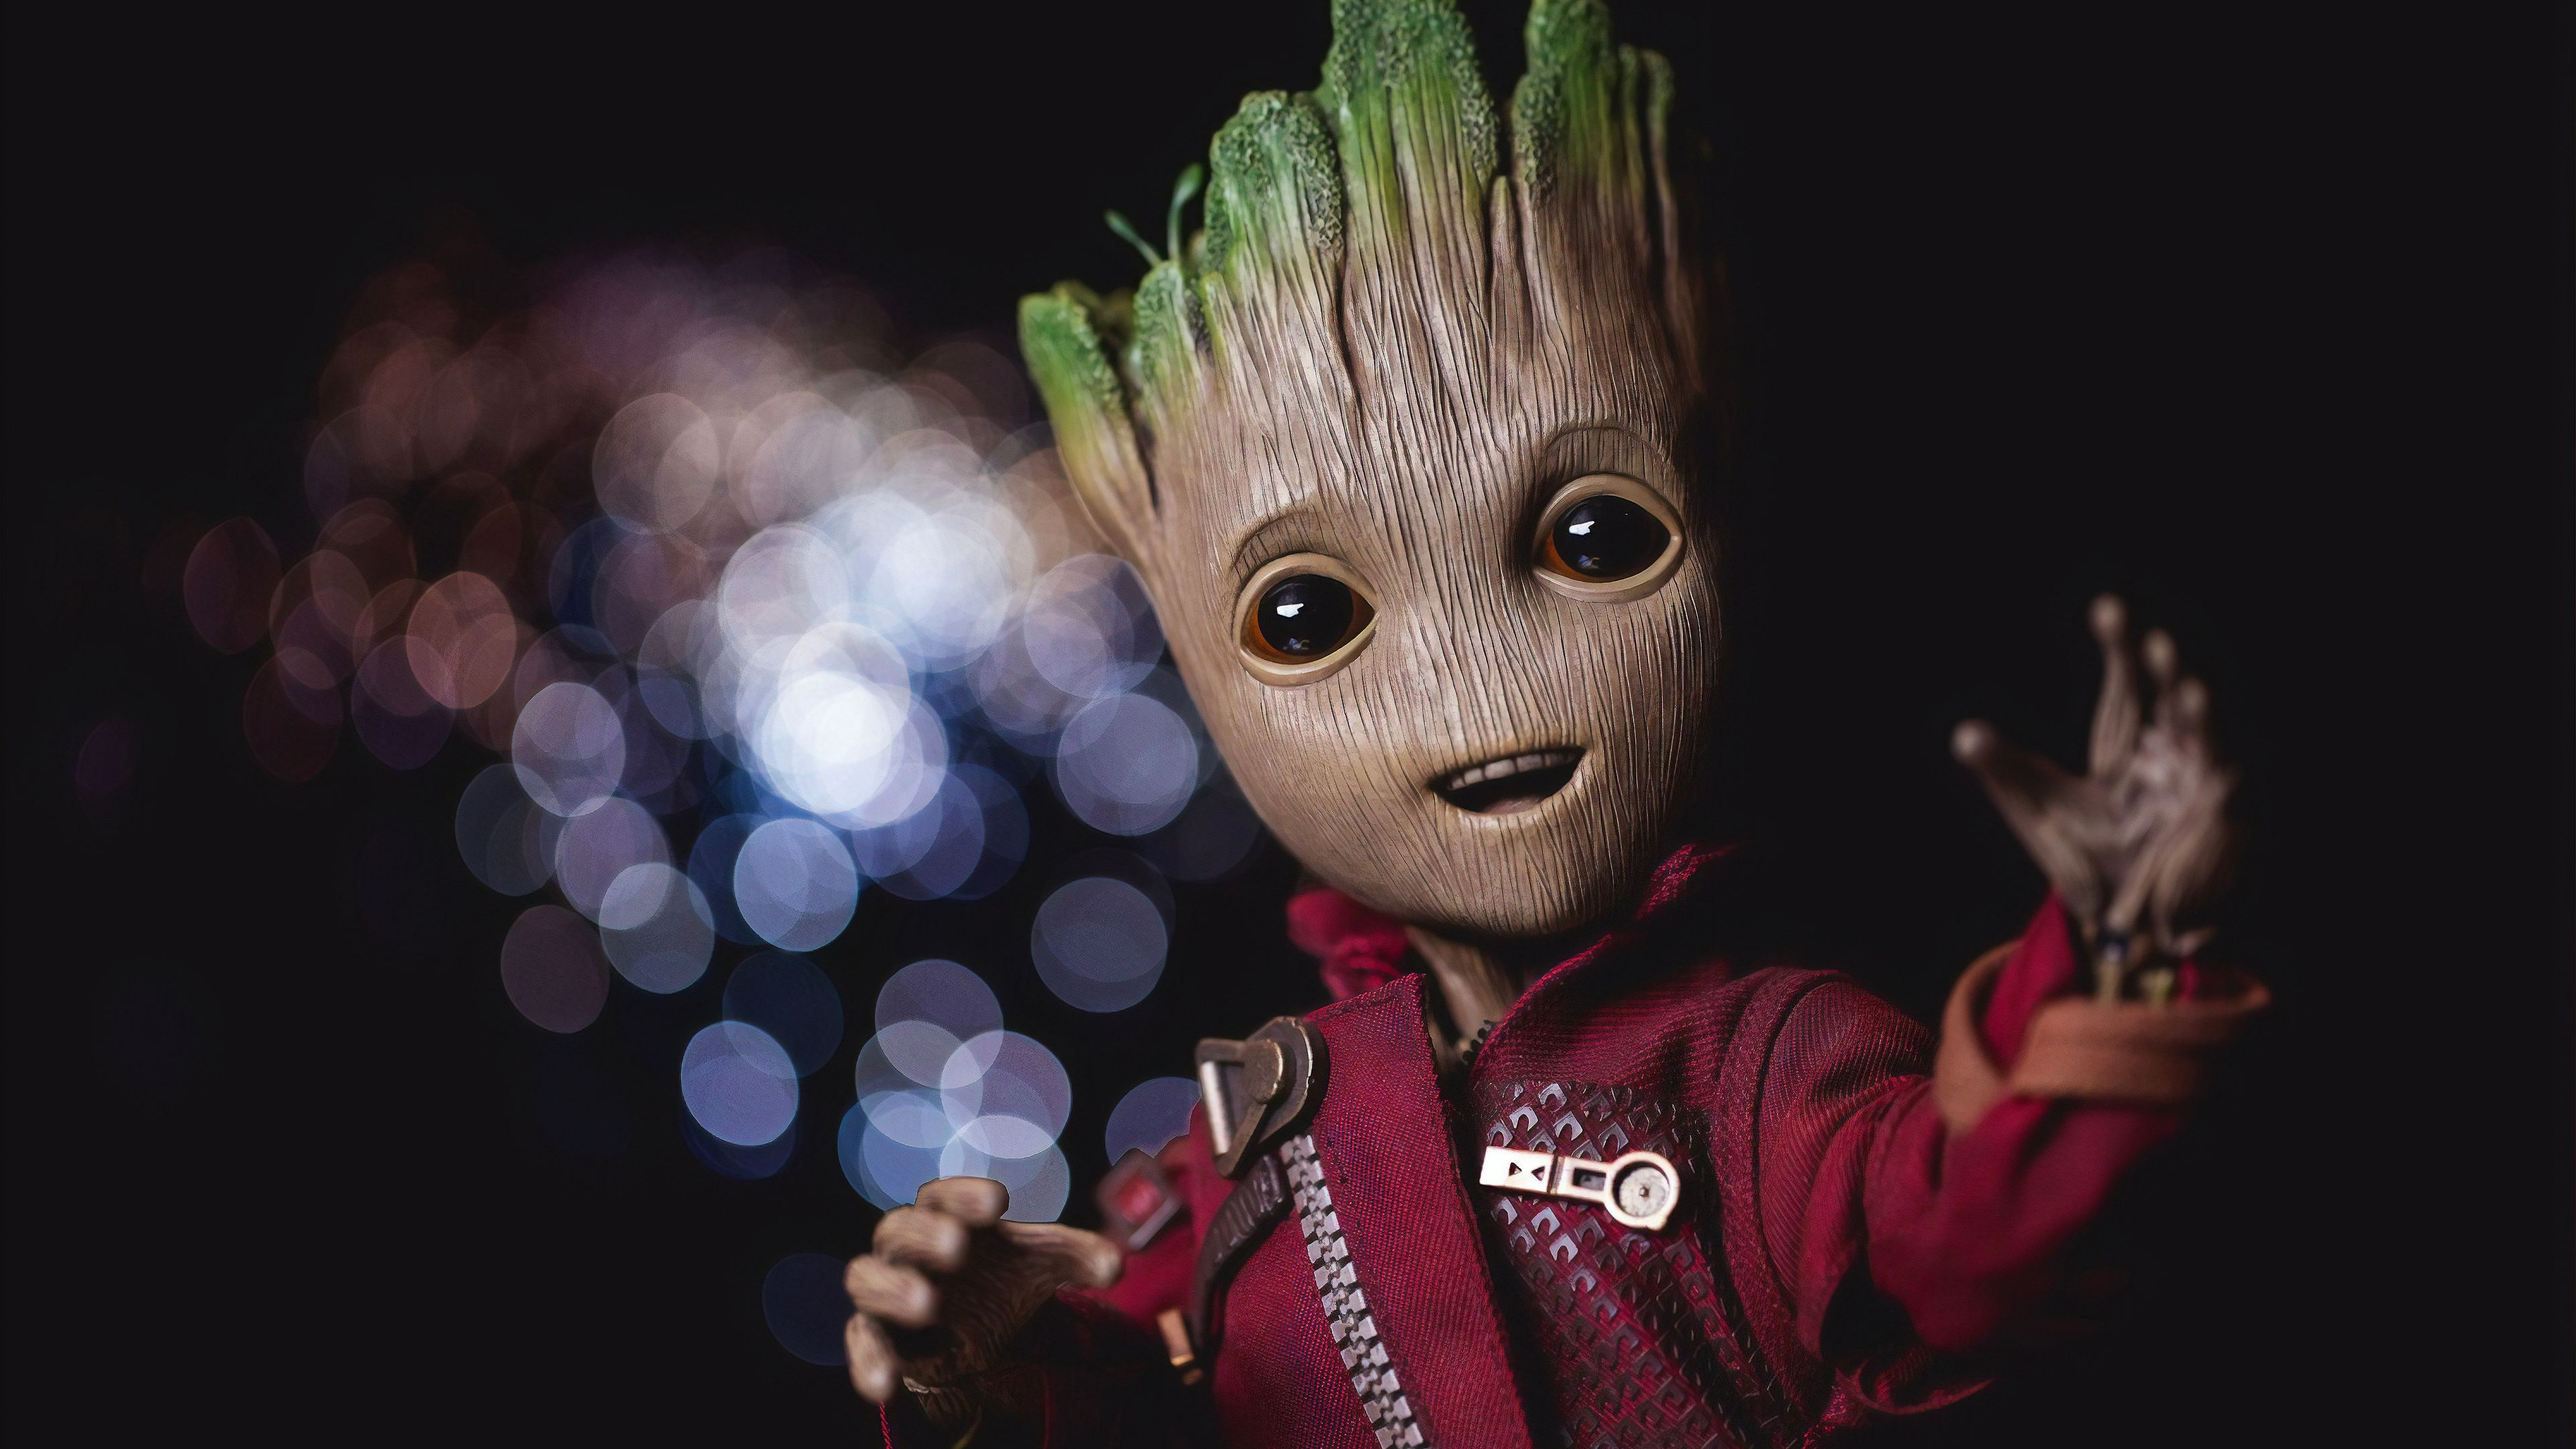 Baby Groot 4k 2019 Superheroes Wallpapers Hd Wallpapers Baby Groot Wallpapers 4k Wallpapers Baby Groot Marvel Wallpaper Hd 3d Wallpaper Superhero